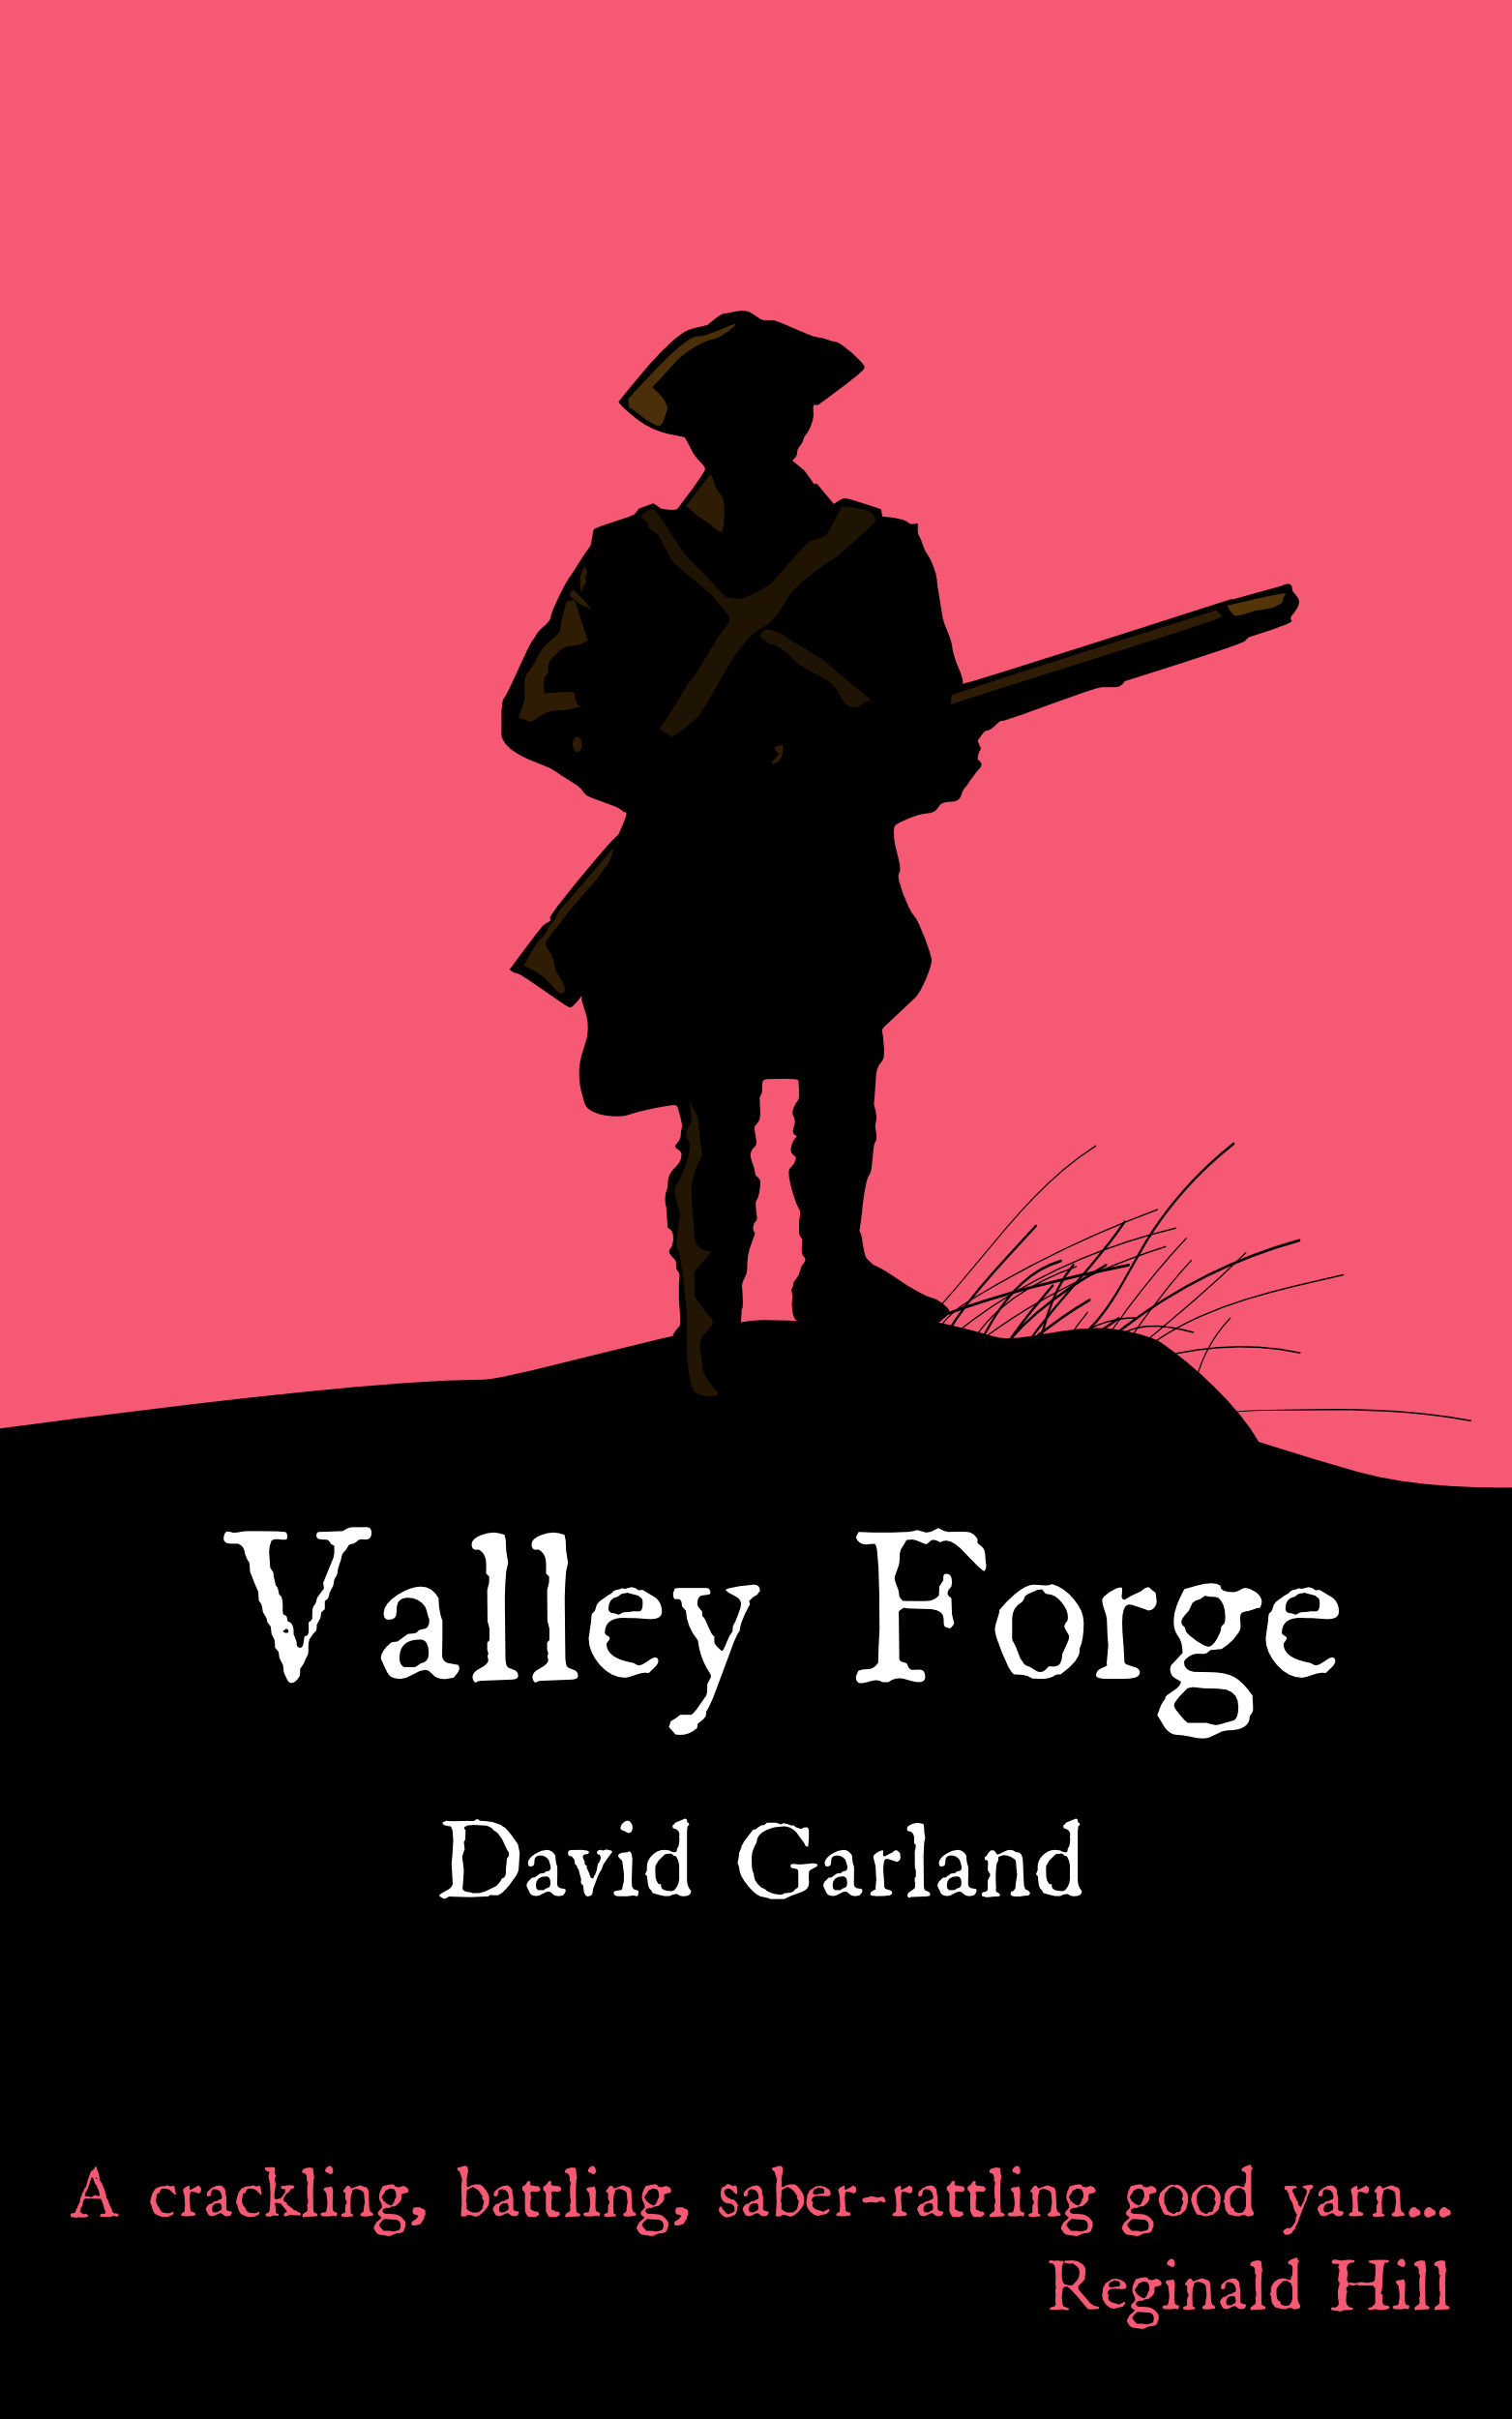 valley forge would i have quit I was trained on this over the course of the last year and have done two dbq lessons one was on jamestown (early jamestown: why did so many die) and this last one on valley forge (valley forge: would you have quit.